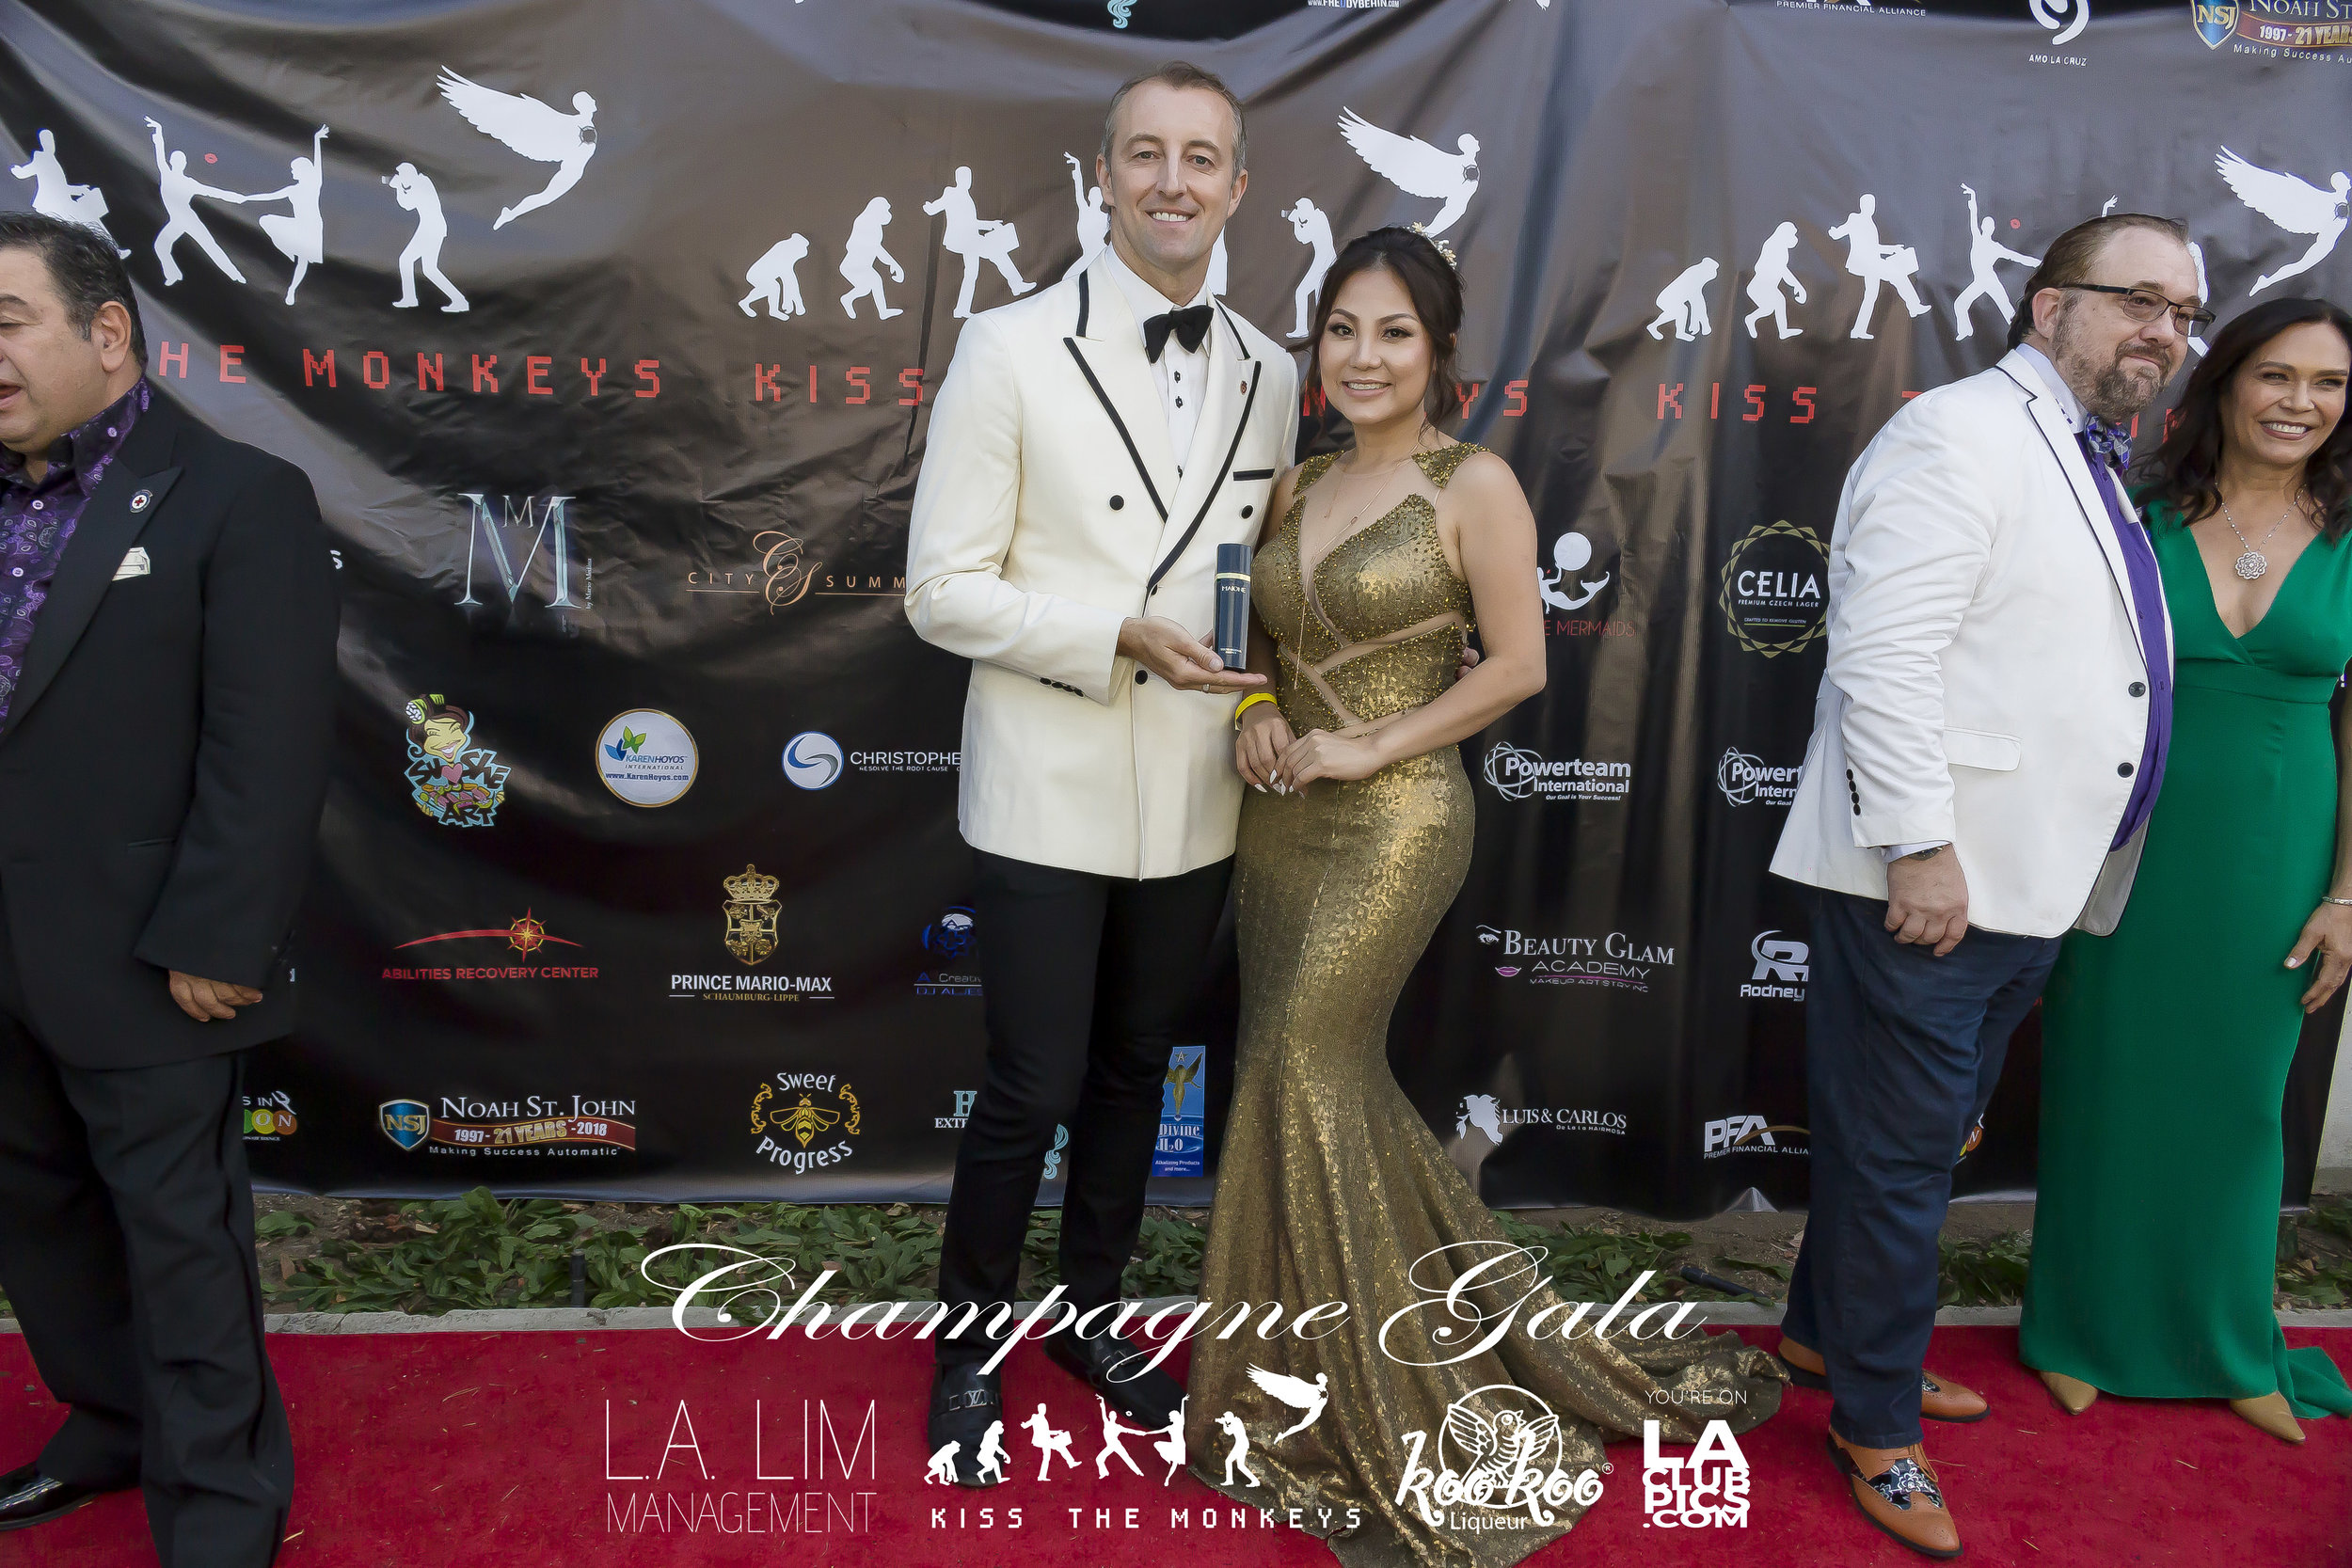 Kiss The Monkeys - Champagne Gala - 07-21-18_123.jpg